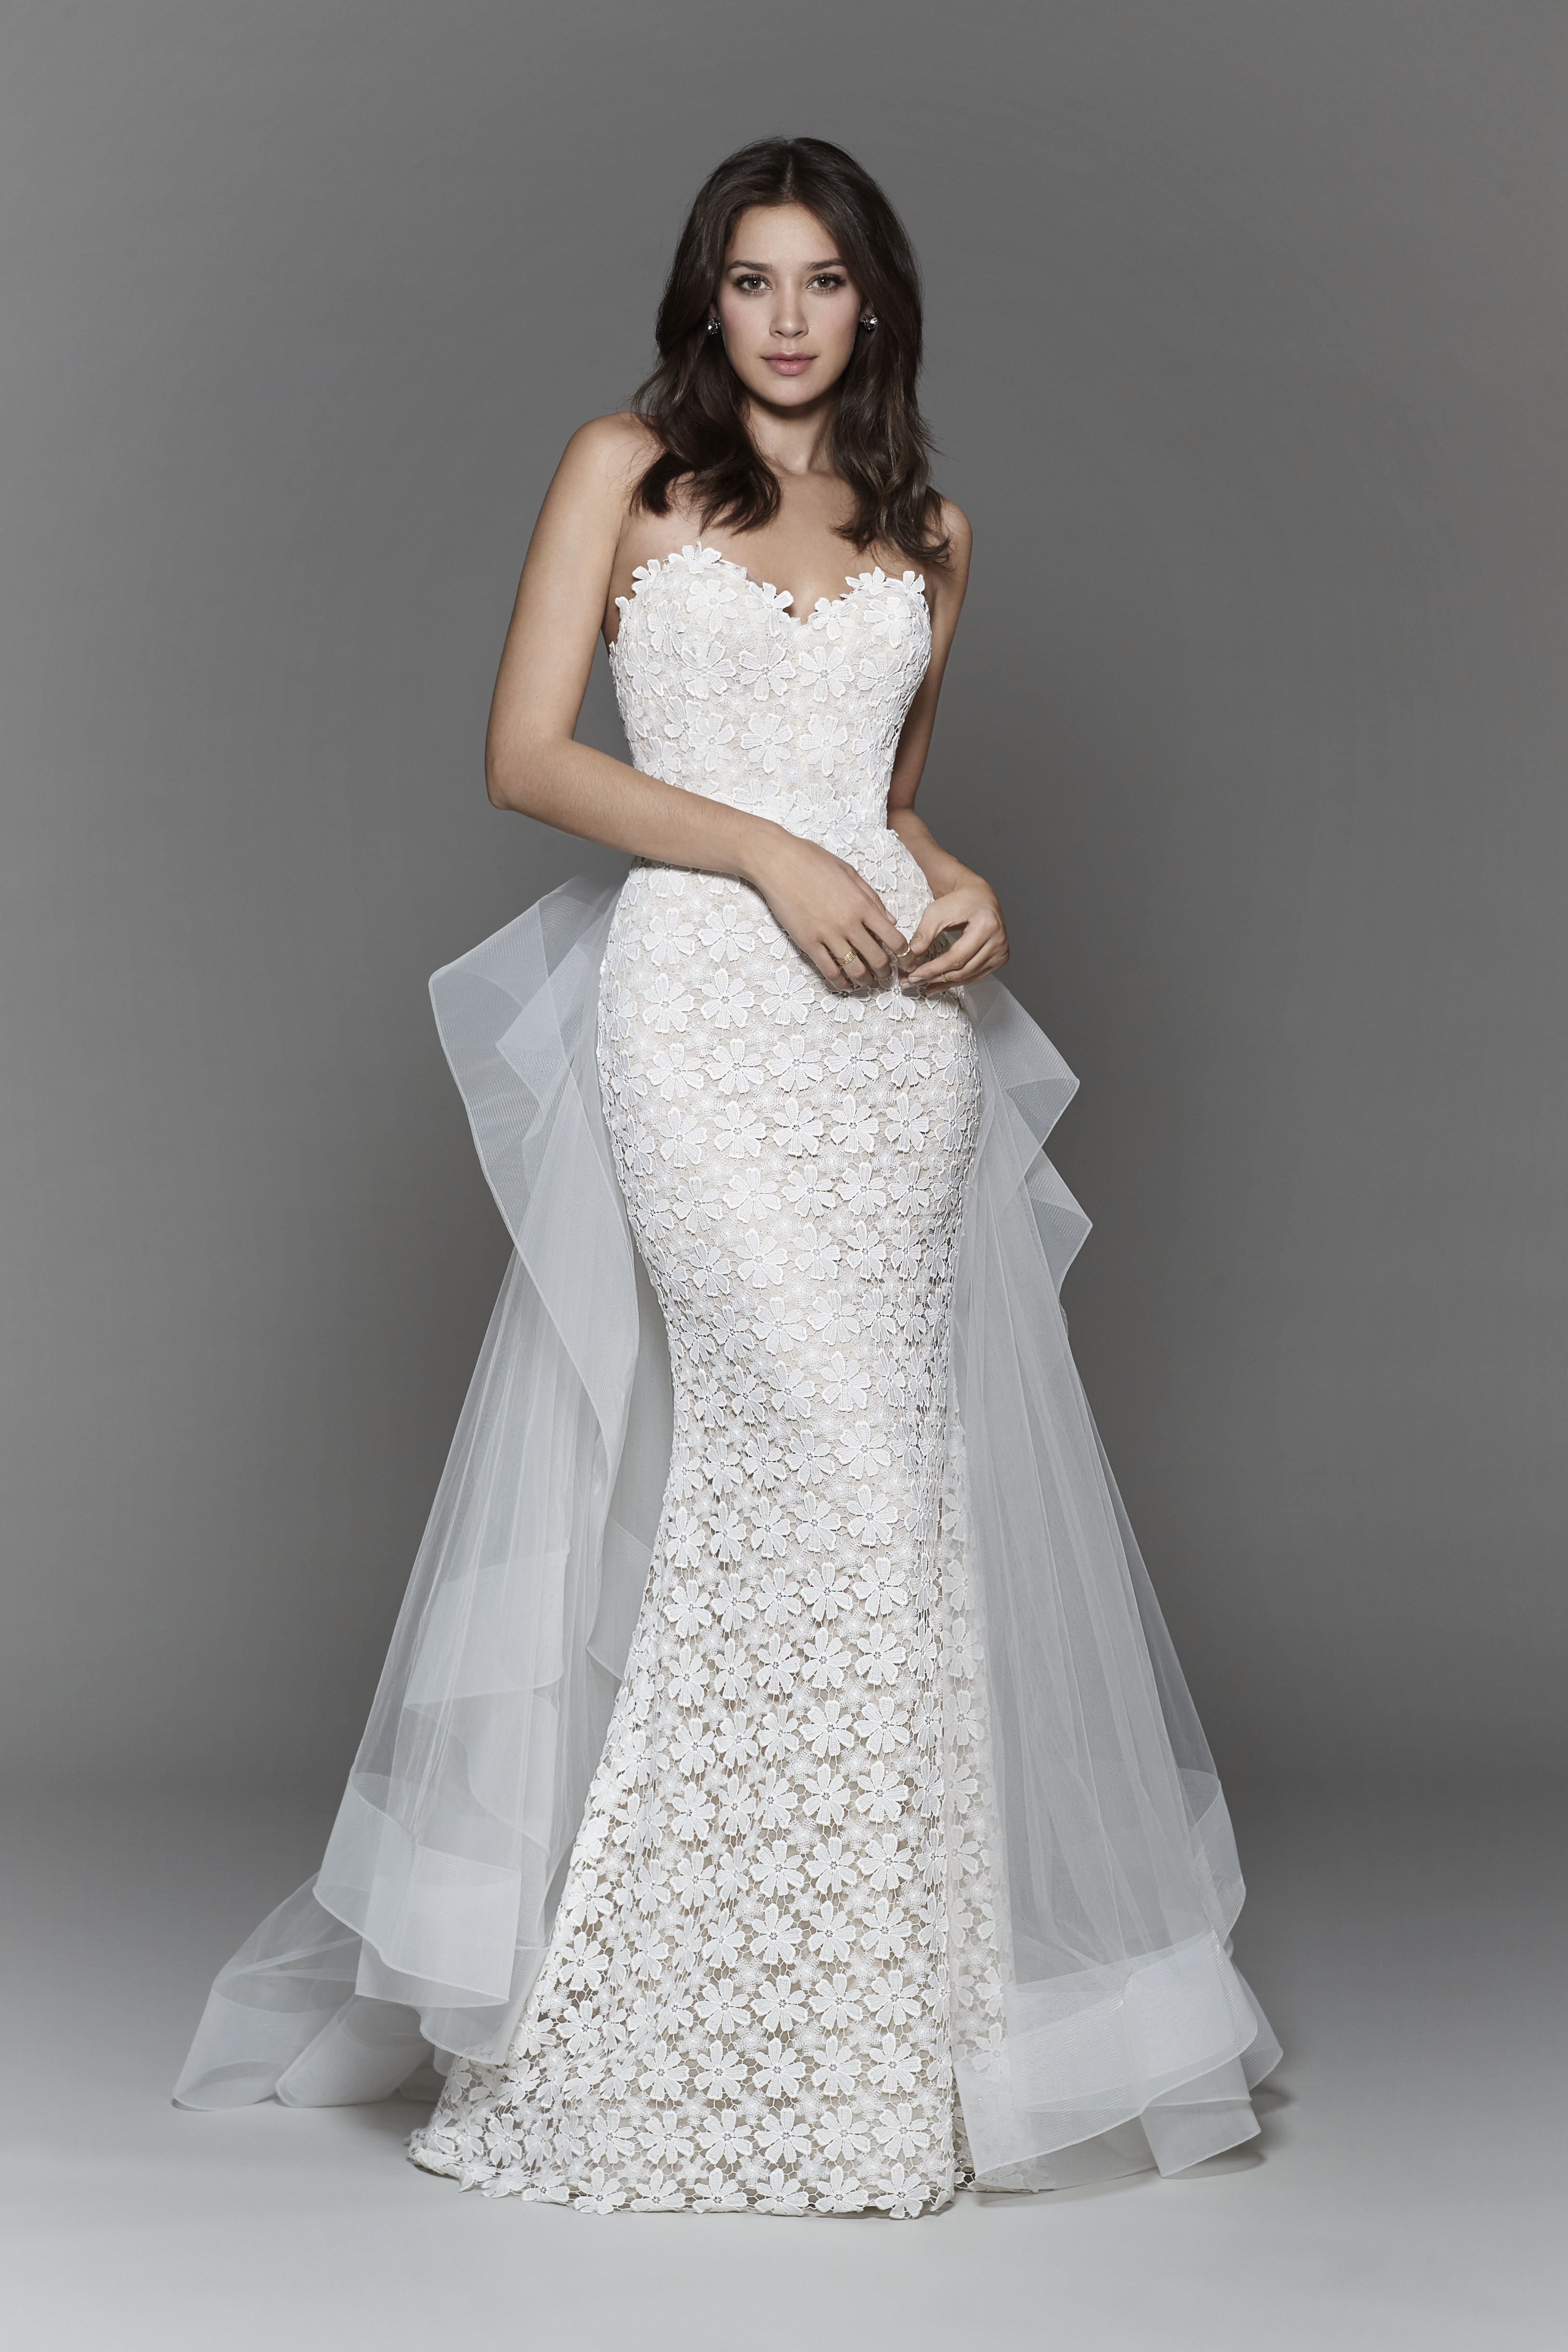 Bridal Gowns Wedding Dresses By Tara Keely Style 2701